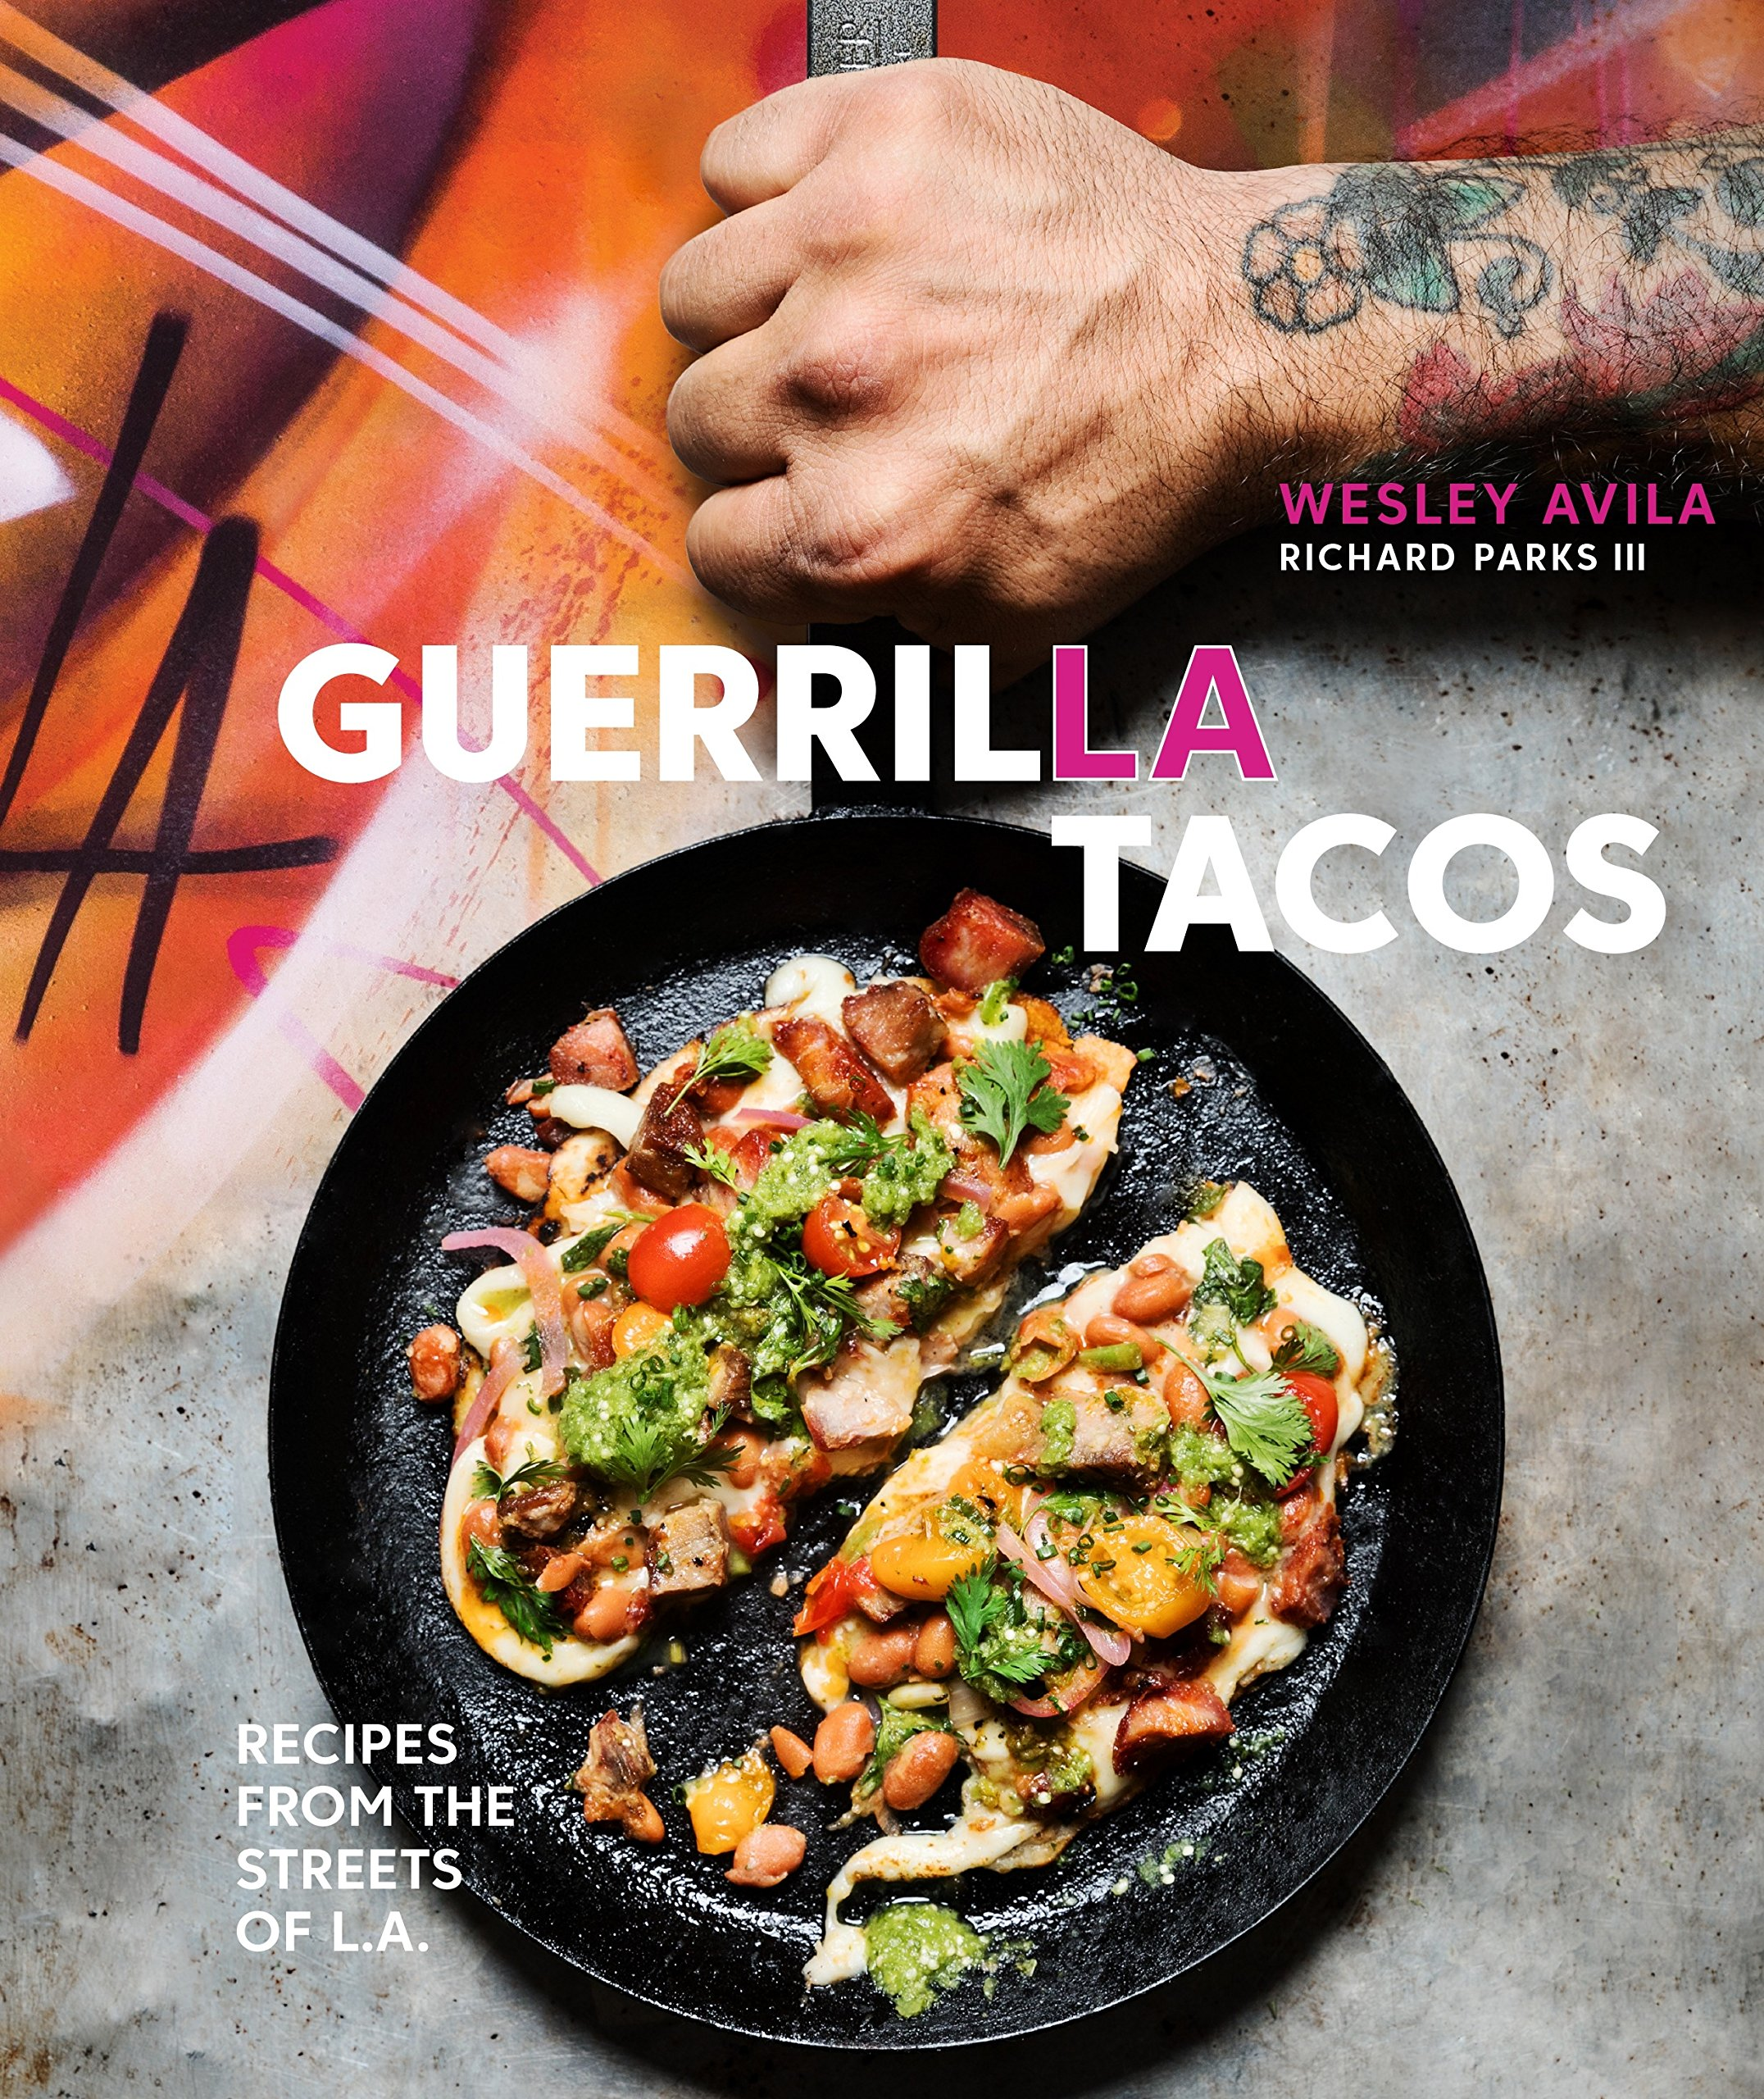 Guerrilla tacos recipes from the streets of la wesley avila guerrilla tacos recipes from the streets of la wesley avila richard parks iii 9780399578632 amazon books forumfinder